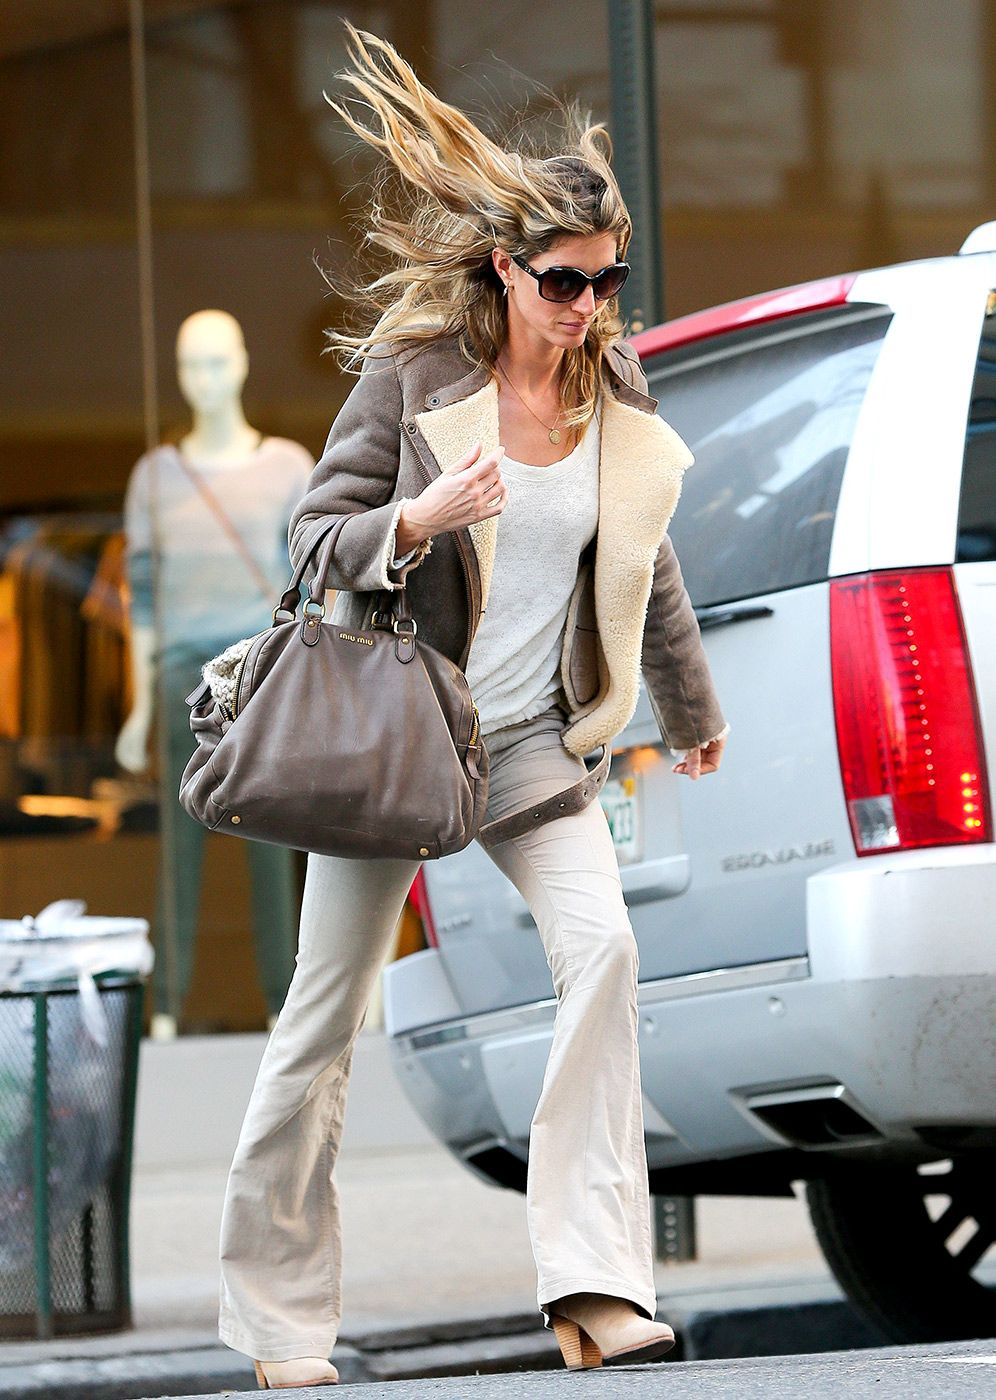 Gisele Bundchen's world-famous locks got whipped up in the chilly March winds as the supermodel mom crossed Madison Avenue during an NYC shopping trip March 11.